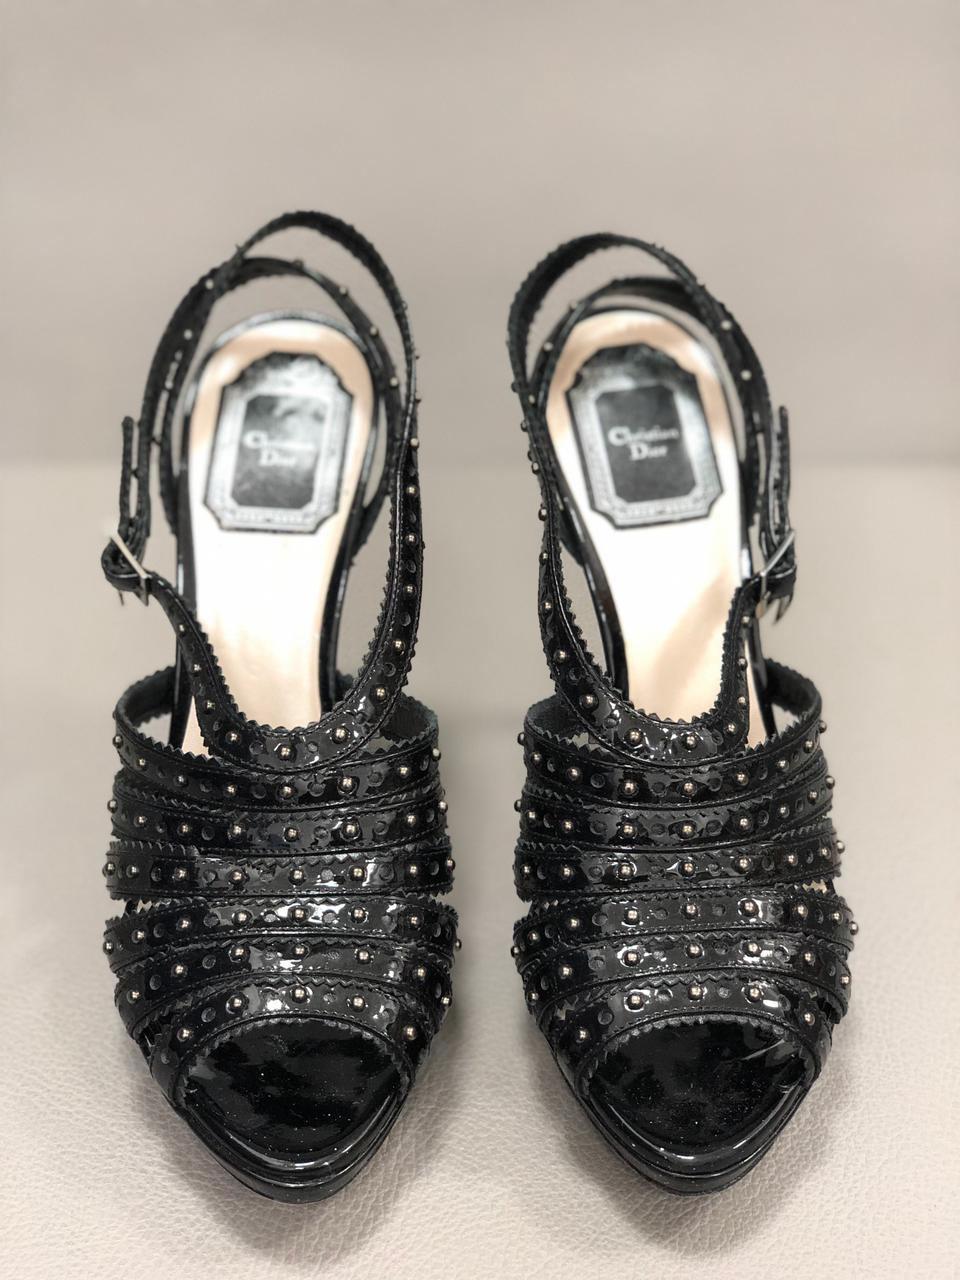 Shoes by Christian Dior